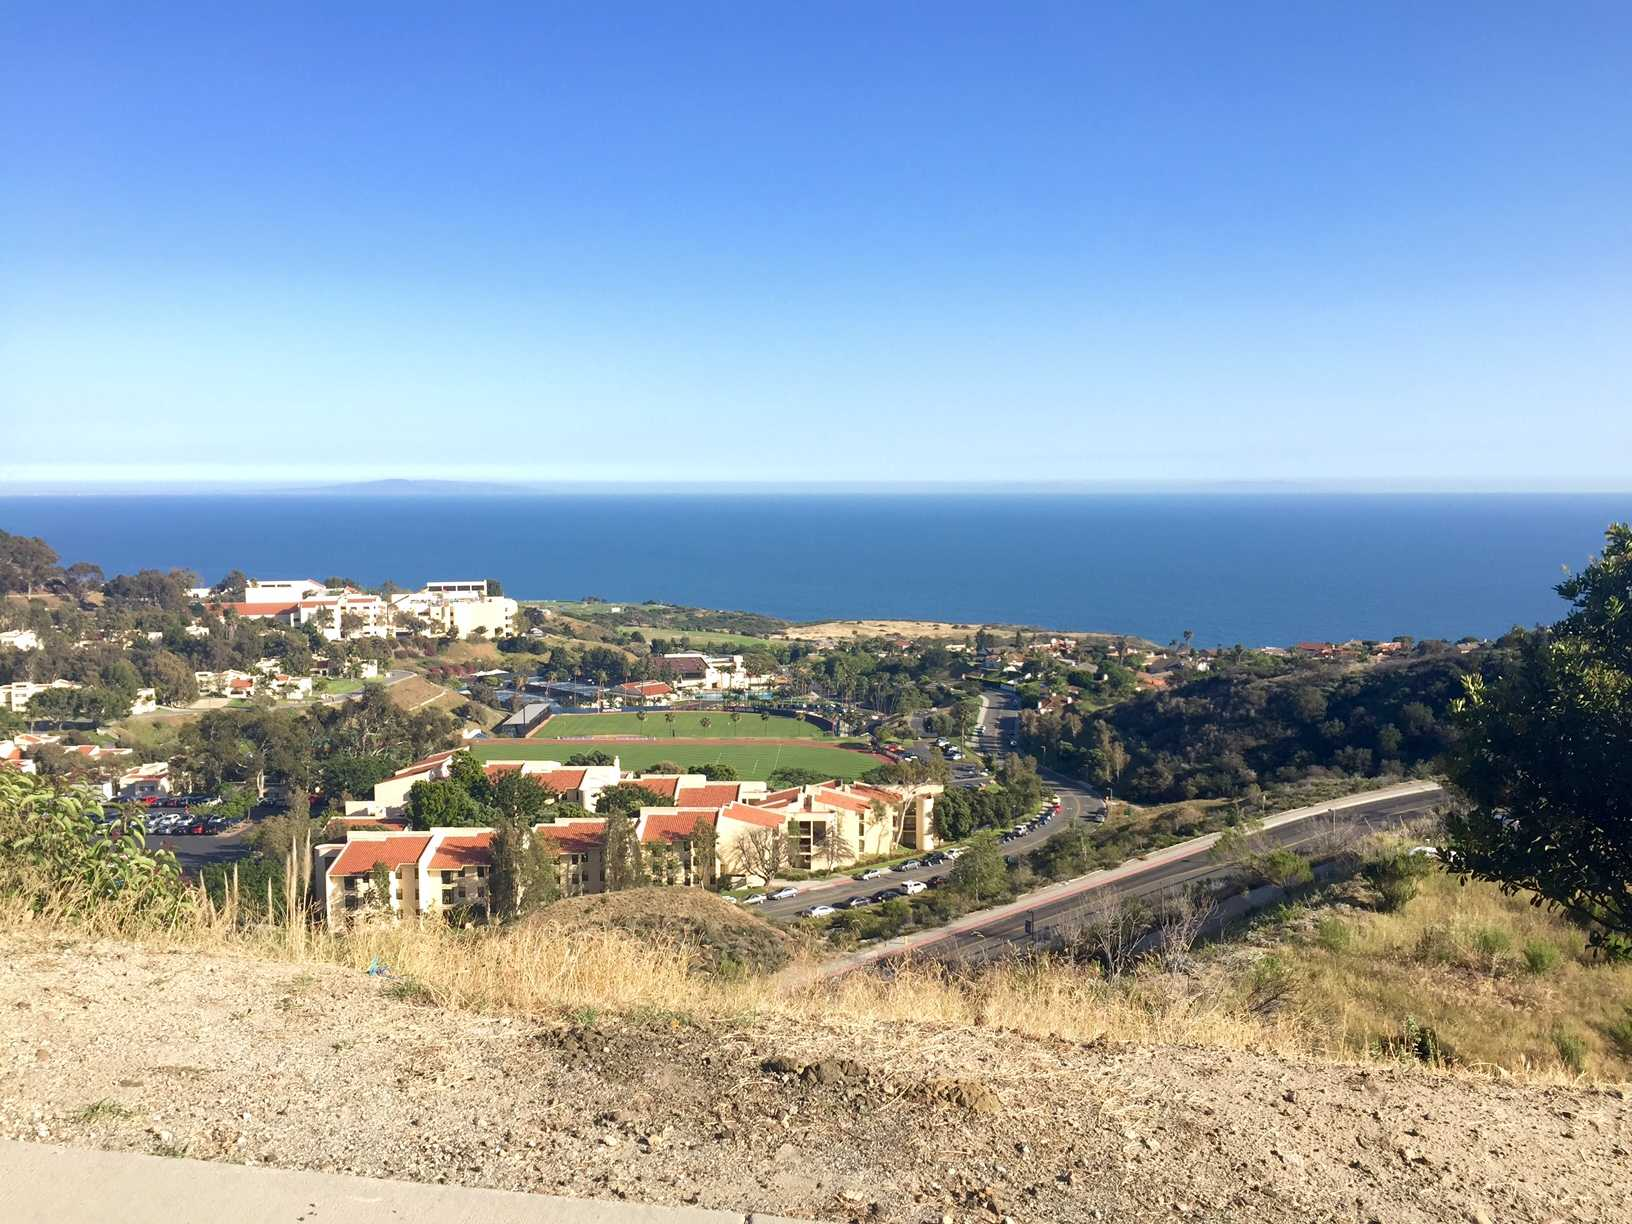 From the top of the hills where the upperclassmen housing is located, you get a beautiful view overlooking parts of campus and the Pacific Ocean.